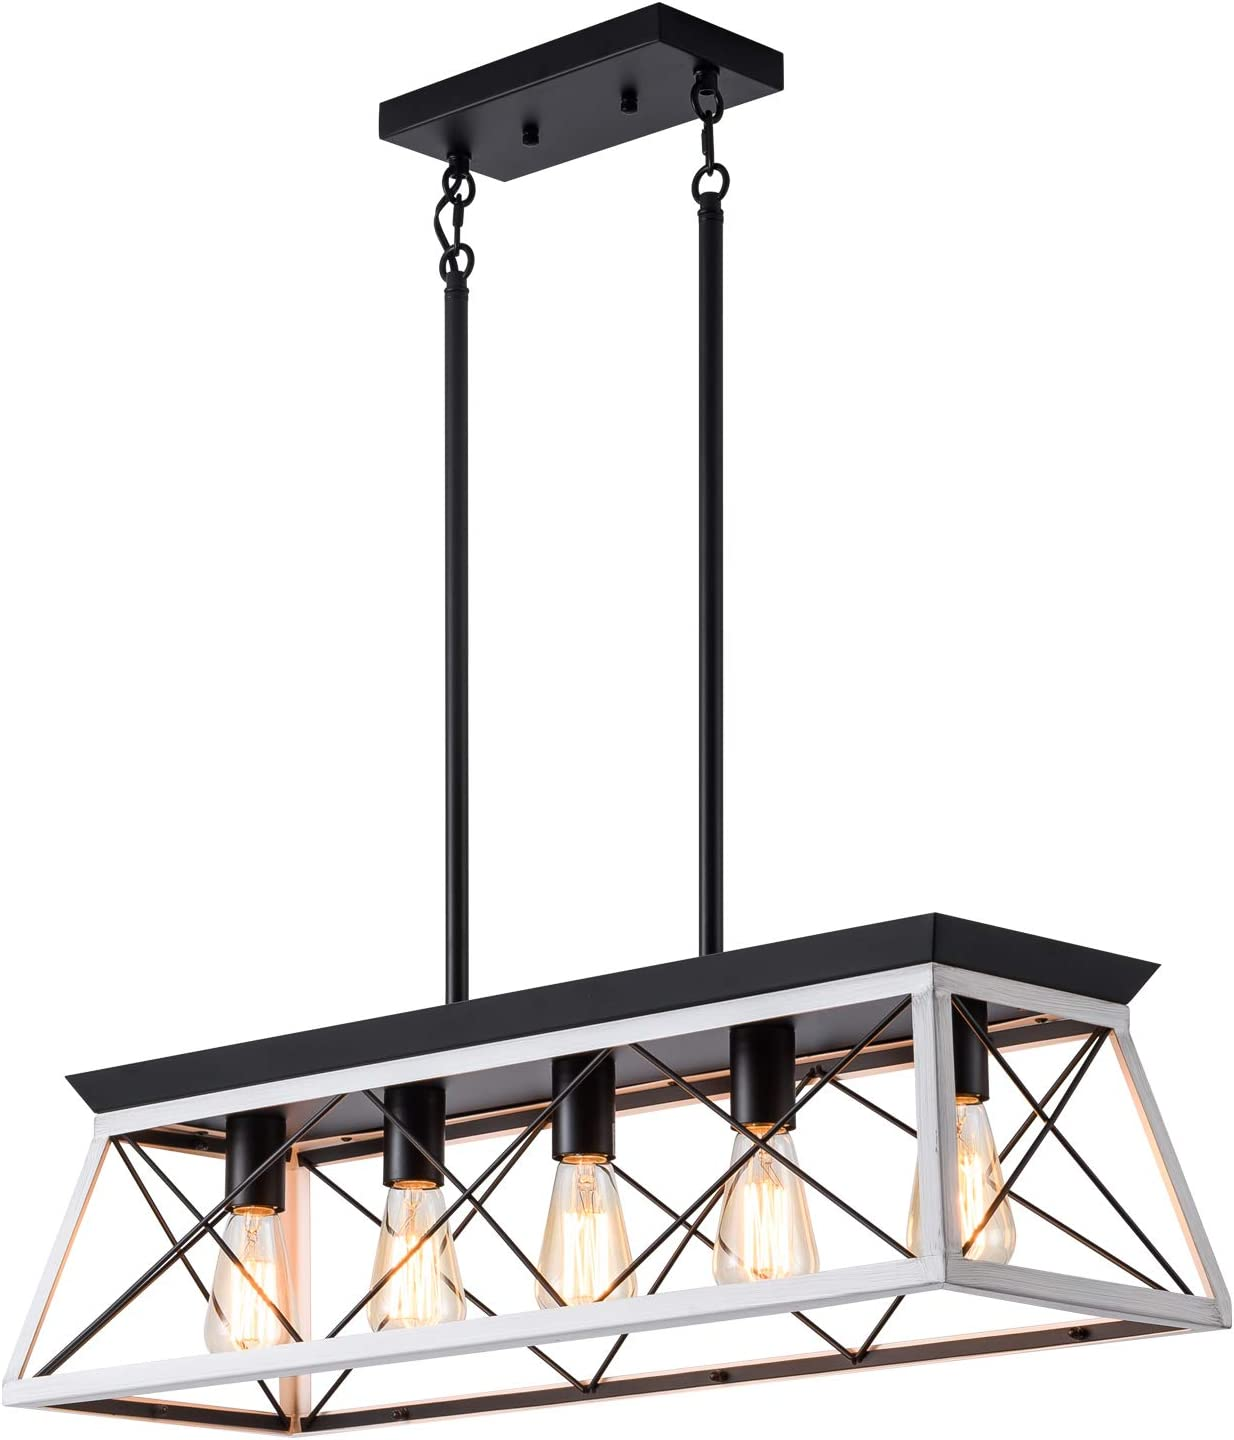 XIPUDA Kitchen Island Lighting Rustic Fixture Room Dining Light New Orleans Mall Max 58% OFF